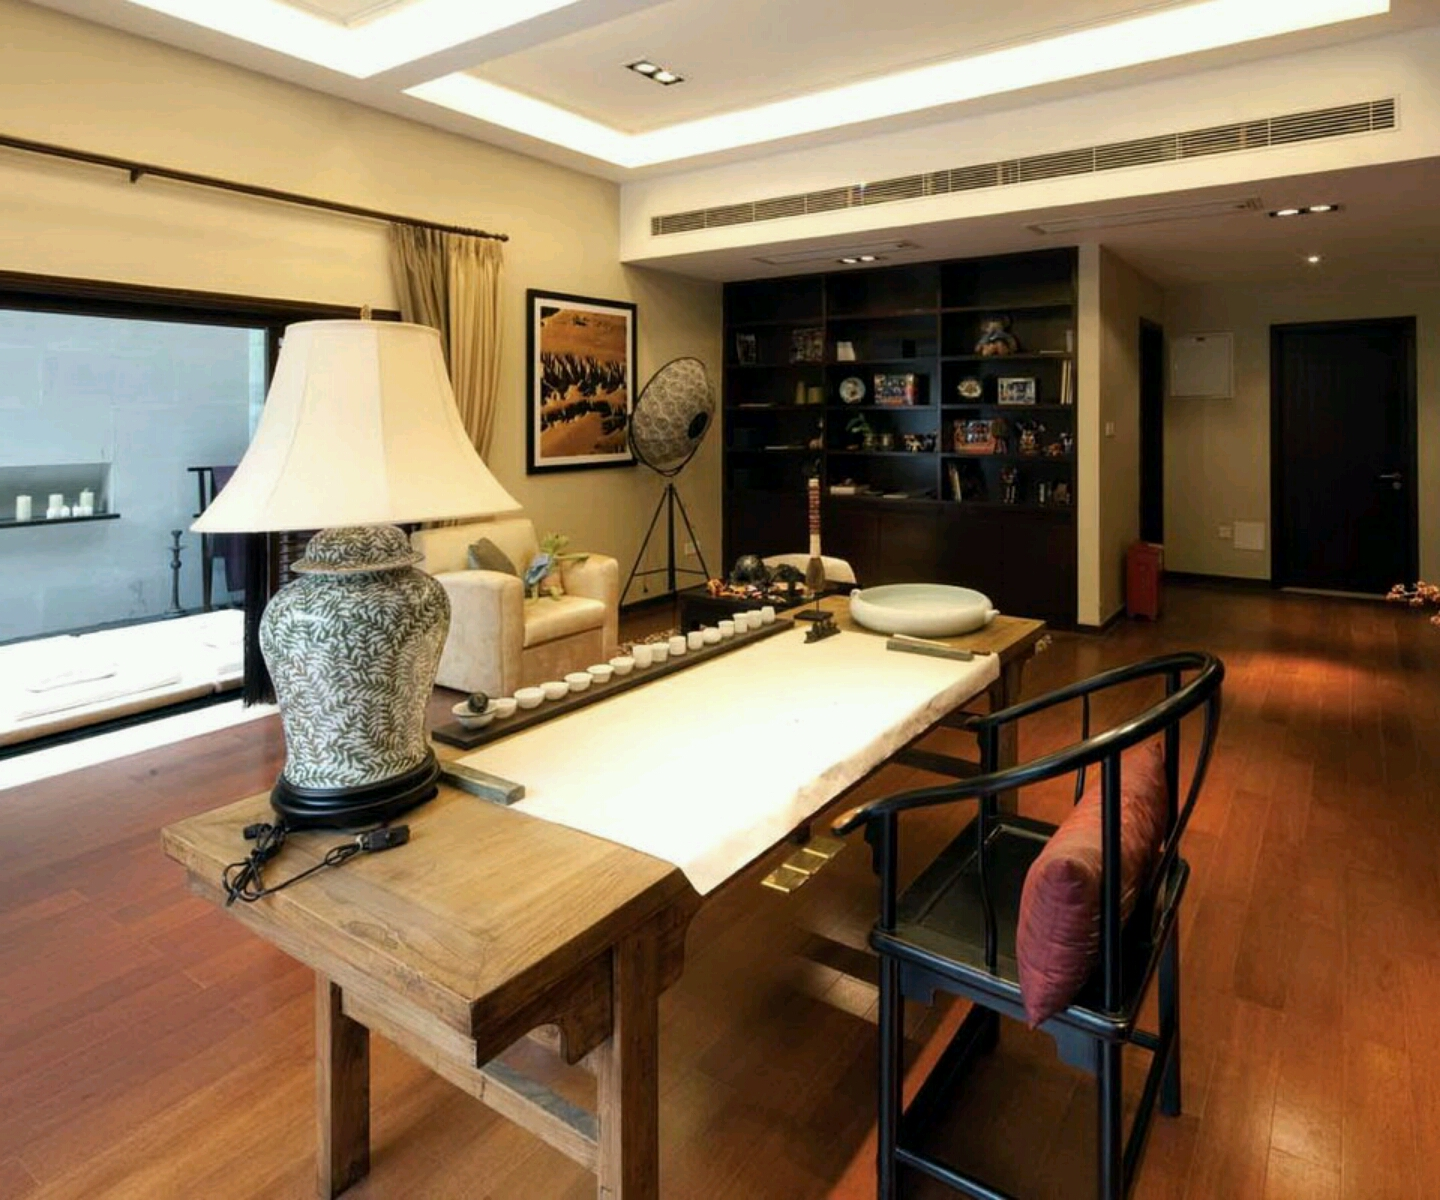 Study Room Interior Design Ideas 1 Study Room Interior: Rumah Rumah Minimalis: Modern Homes Interior Designs